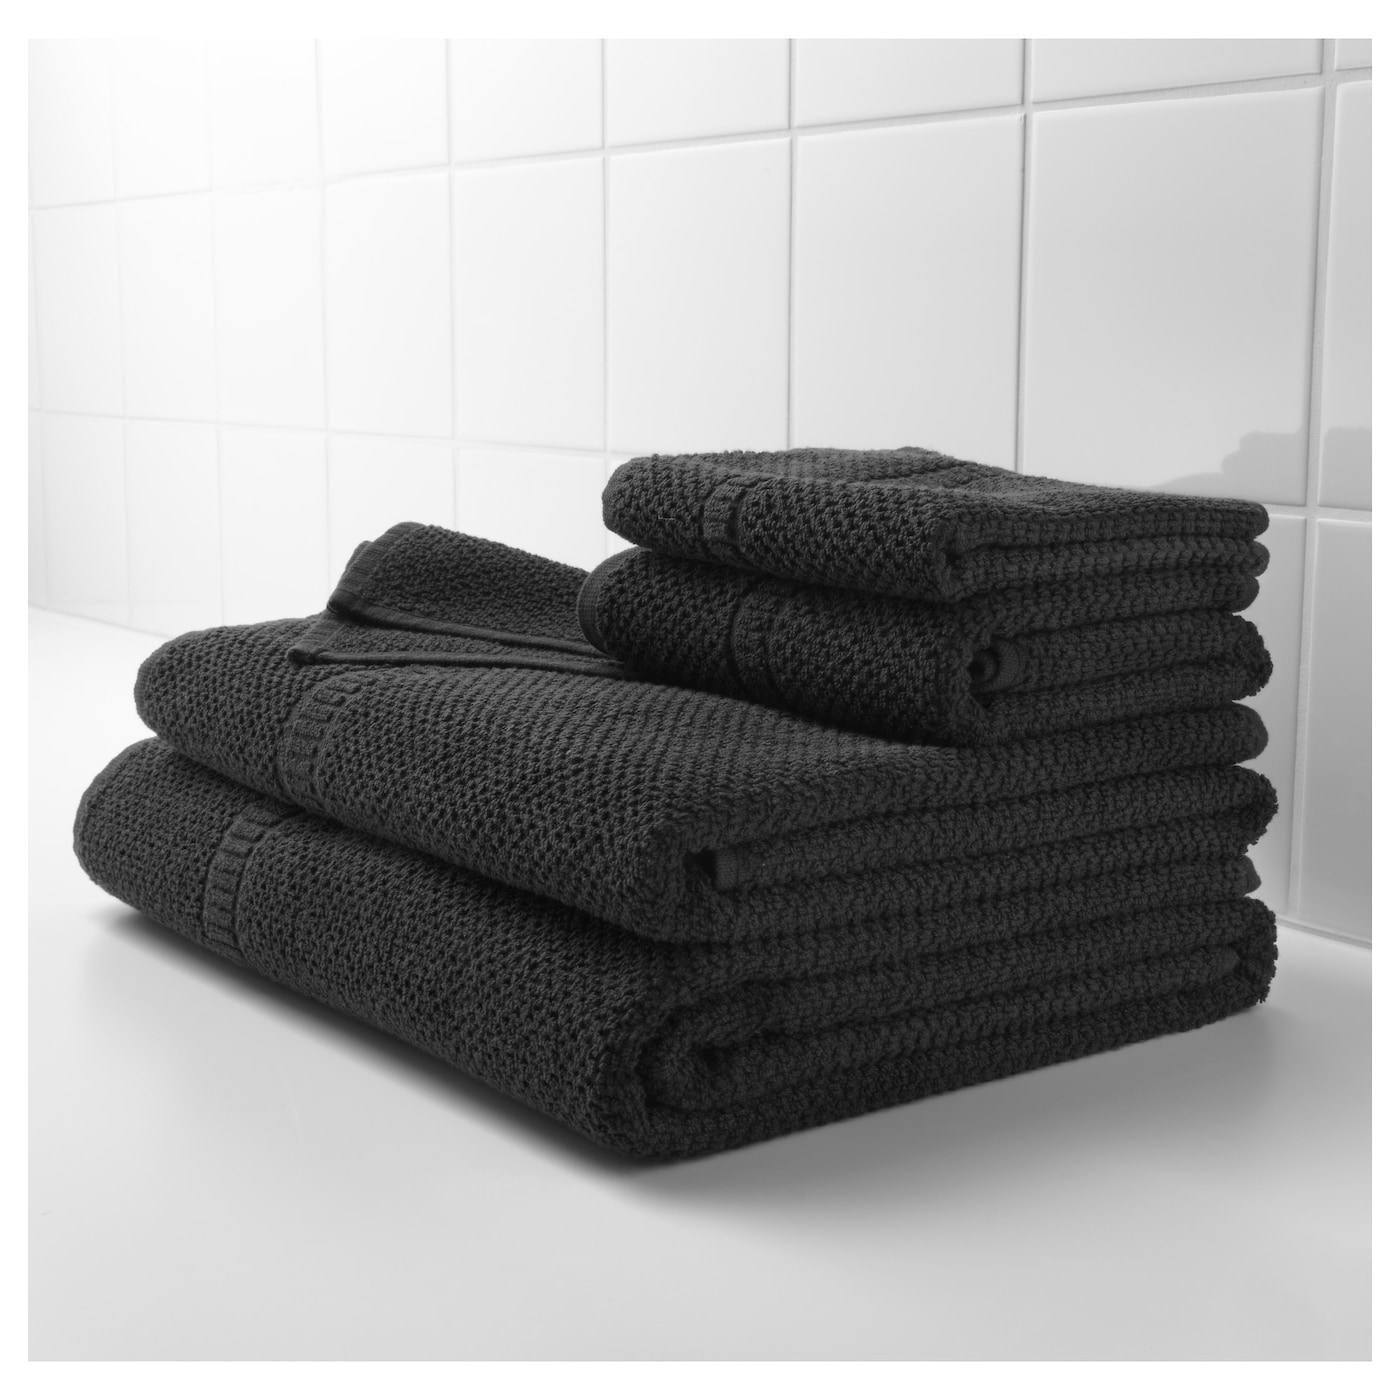 ikea frjen bath sheet the long fine fibres of combed cotton create a soft and